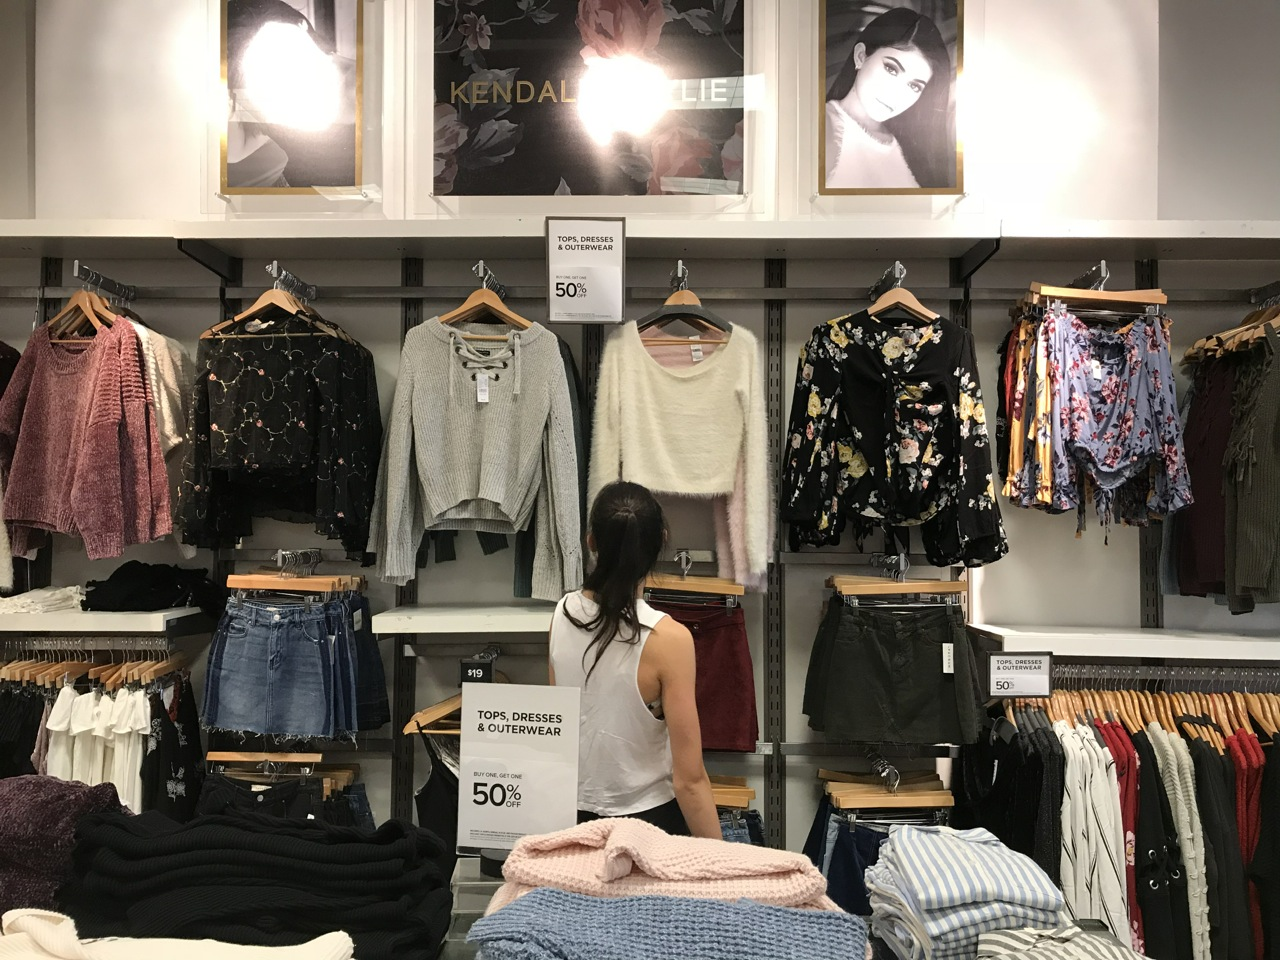 The Kendall and Kylie section on sale at PacSun